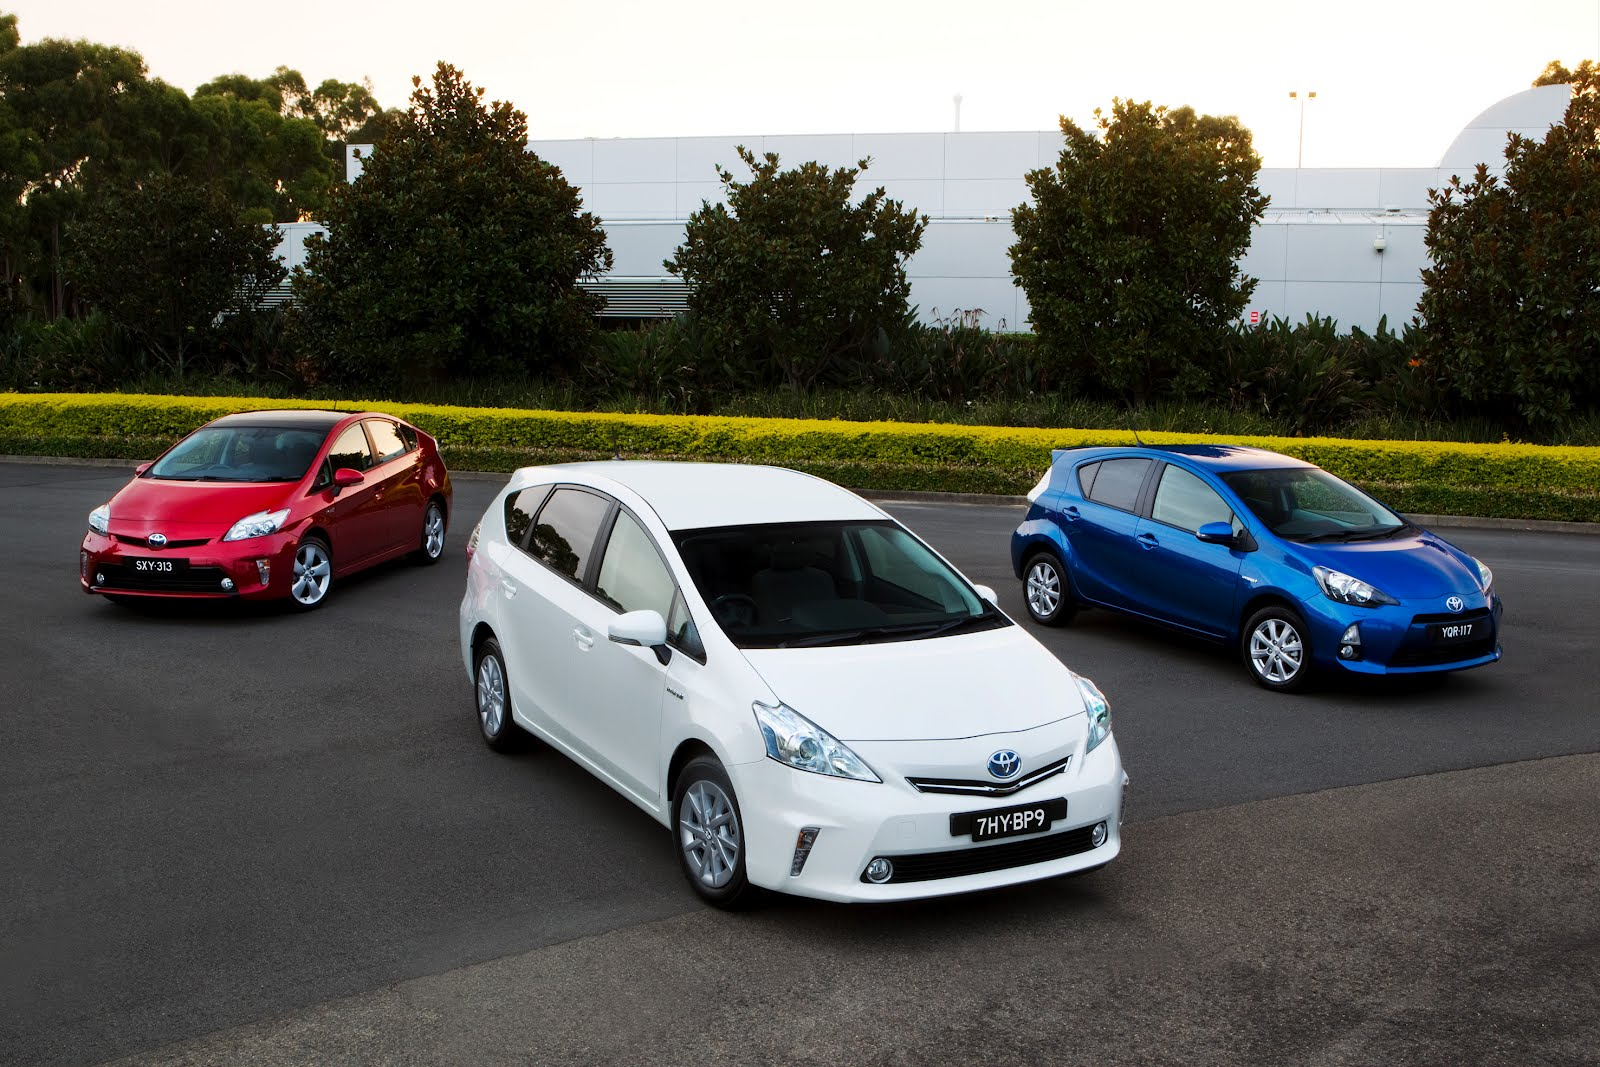 Toyota sold more than one million hybrids in 2012